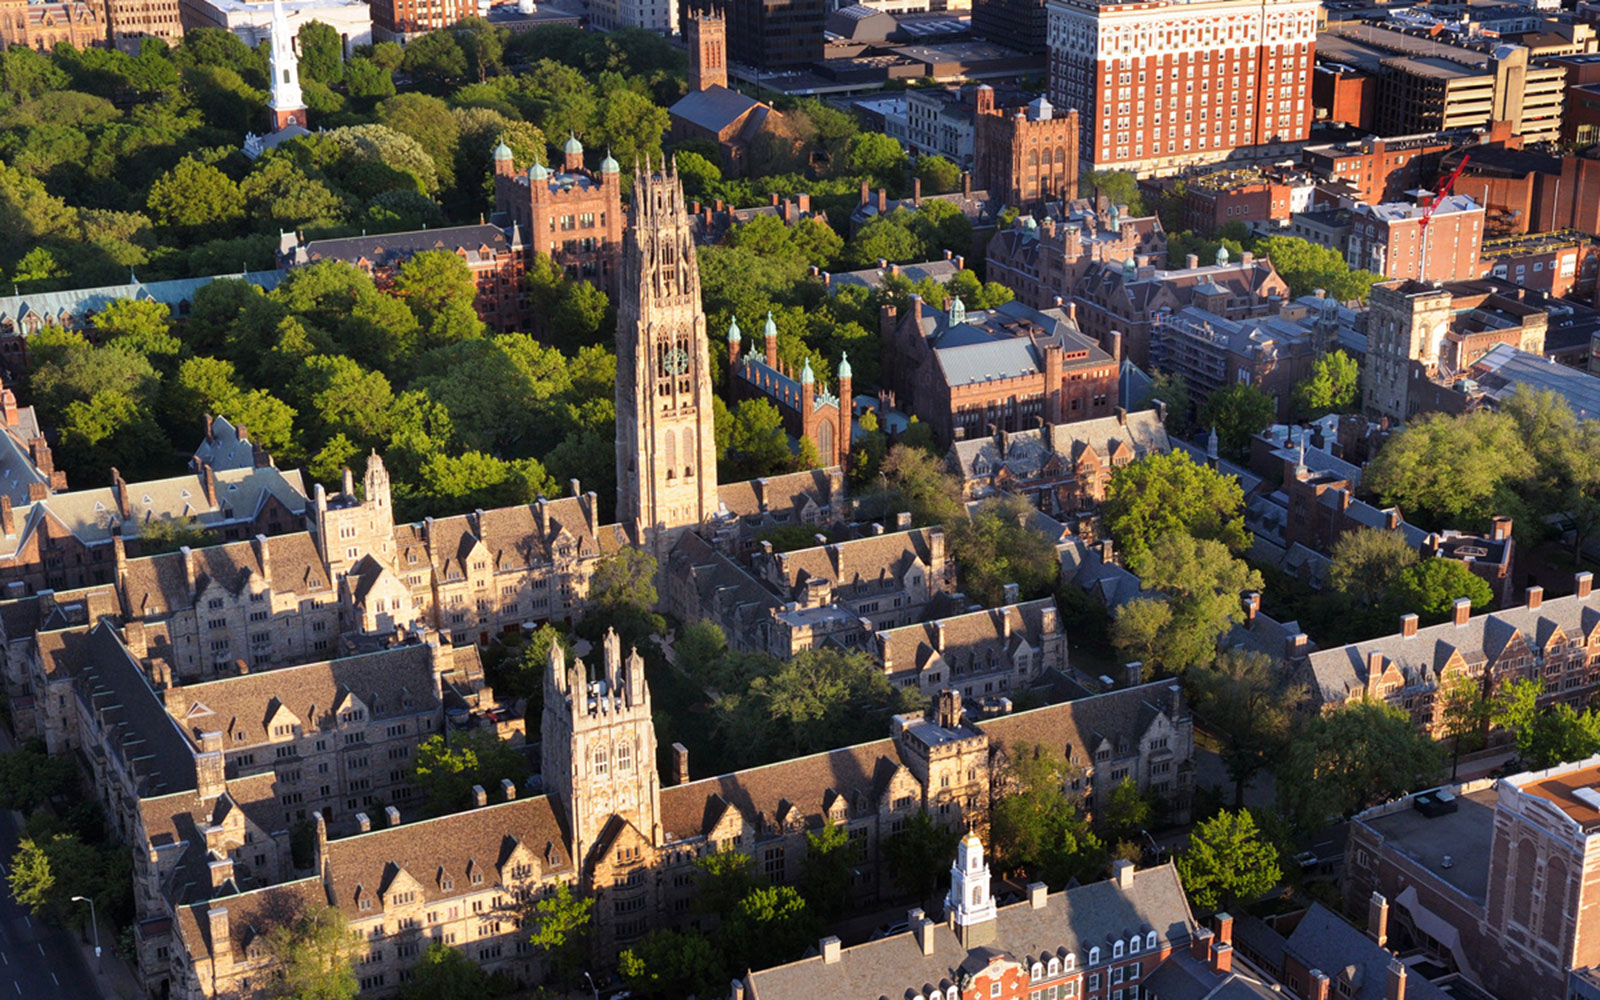 Yale University: New Haven, CT